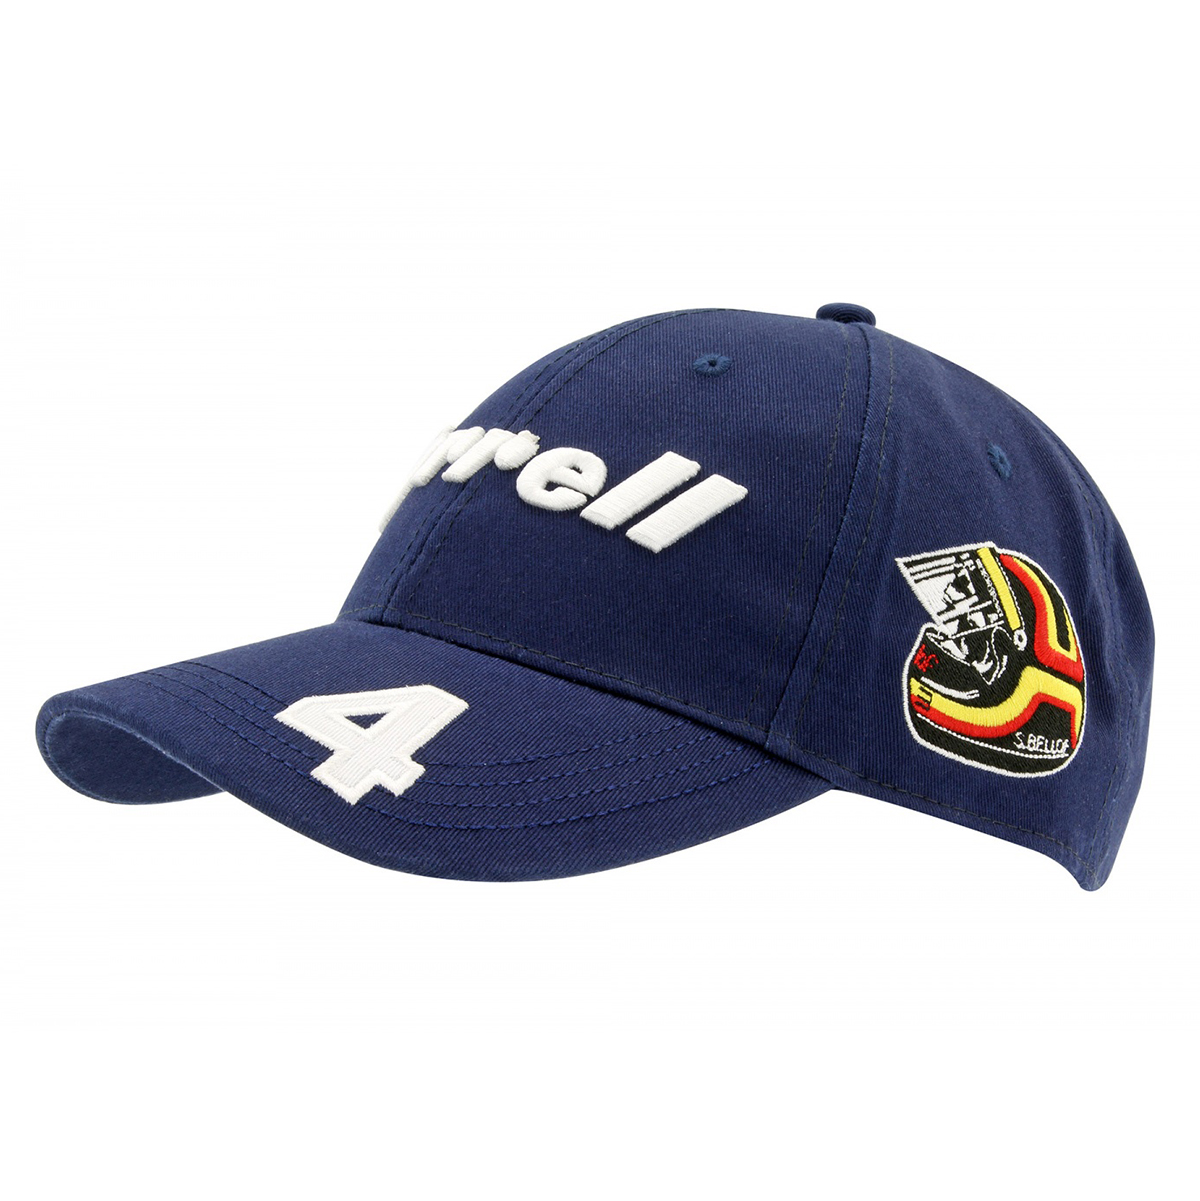 stefan-bellof-cap-tyrell-racing-no4